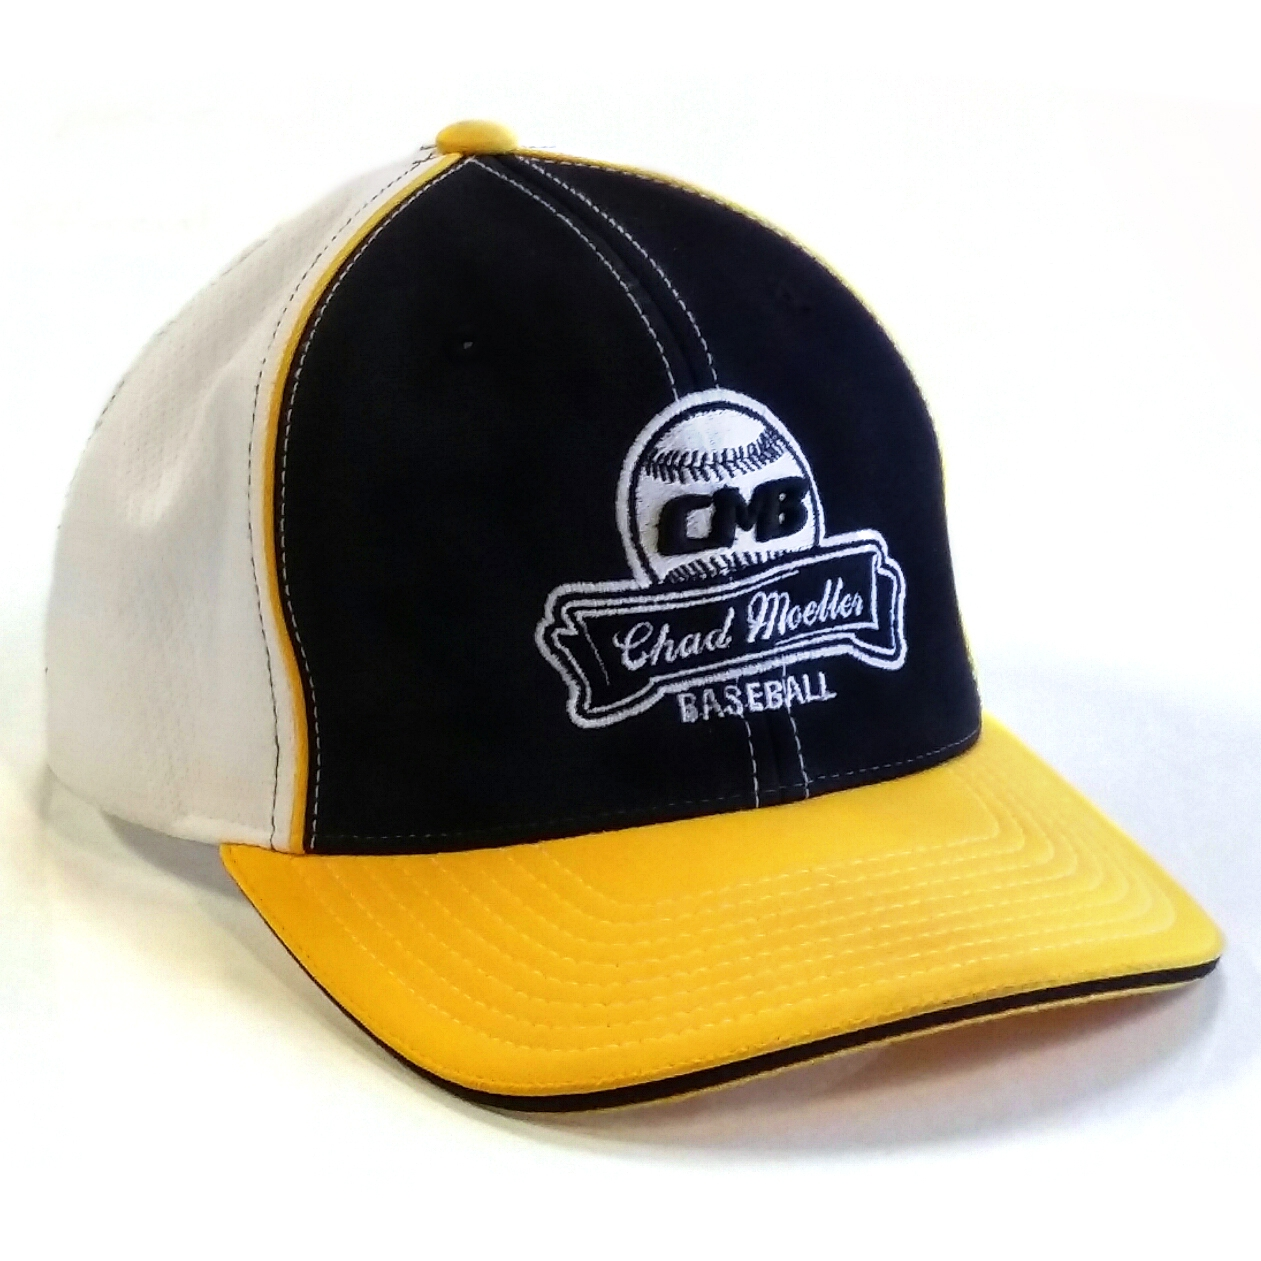 CMB Logo Hat, Yellow and Black